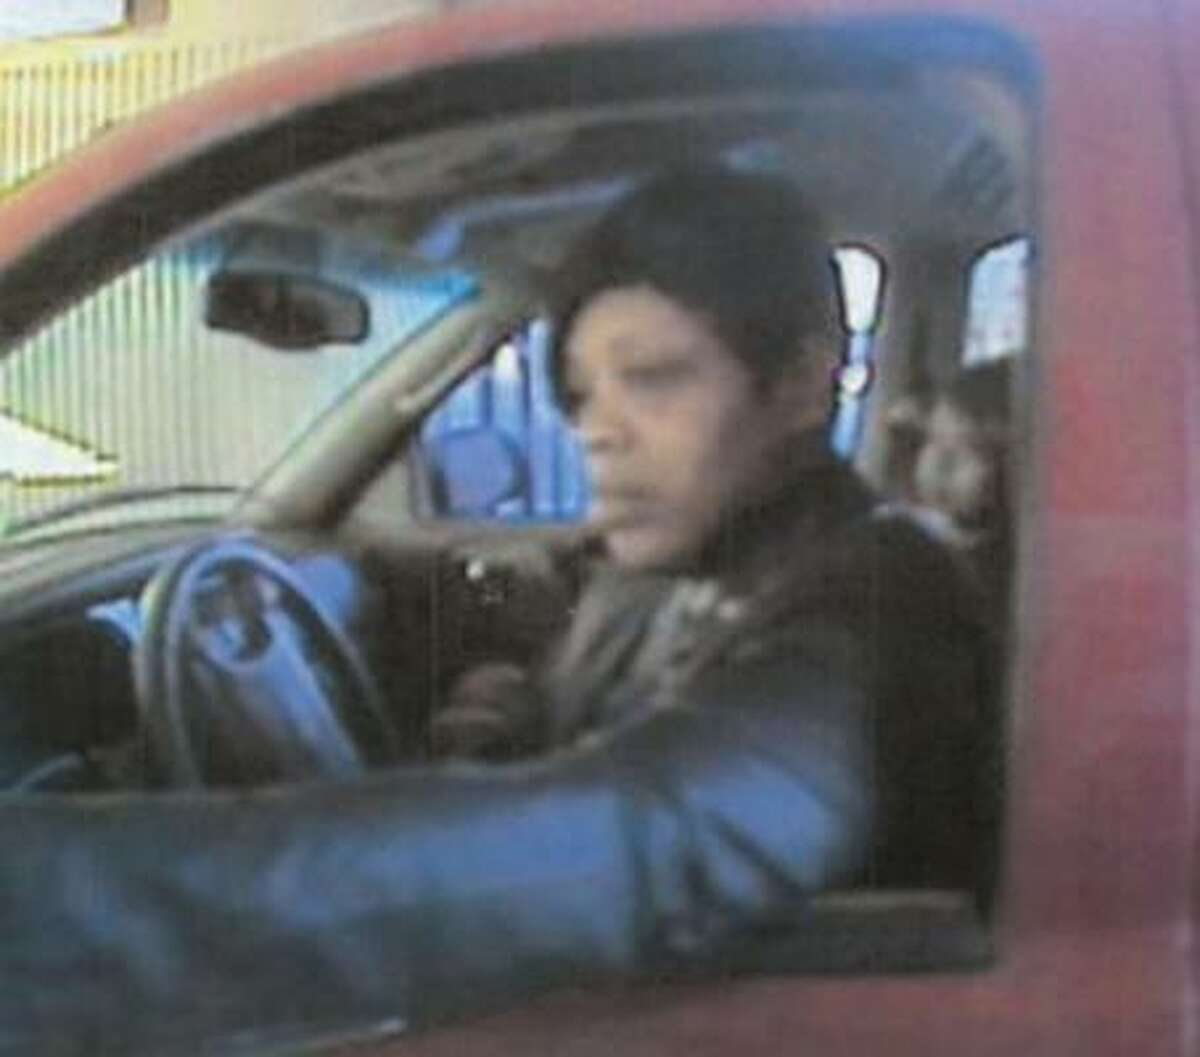 Houston police say this woman used a stolen debit card in a scheme to steal money from a man's bank account.